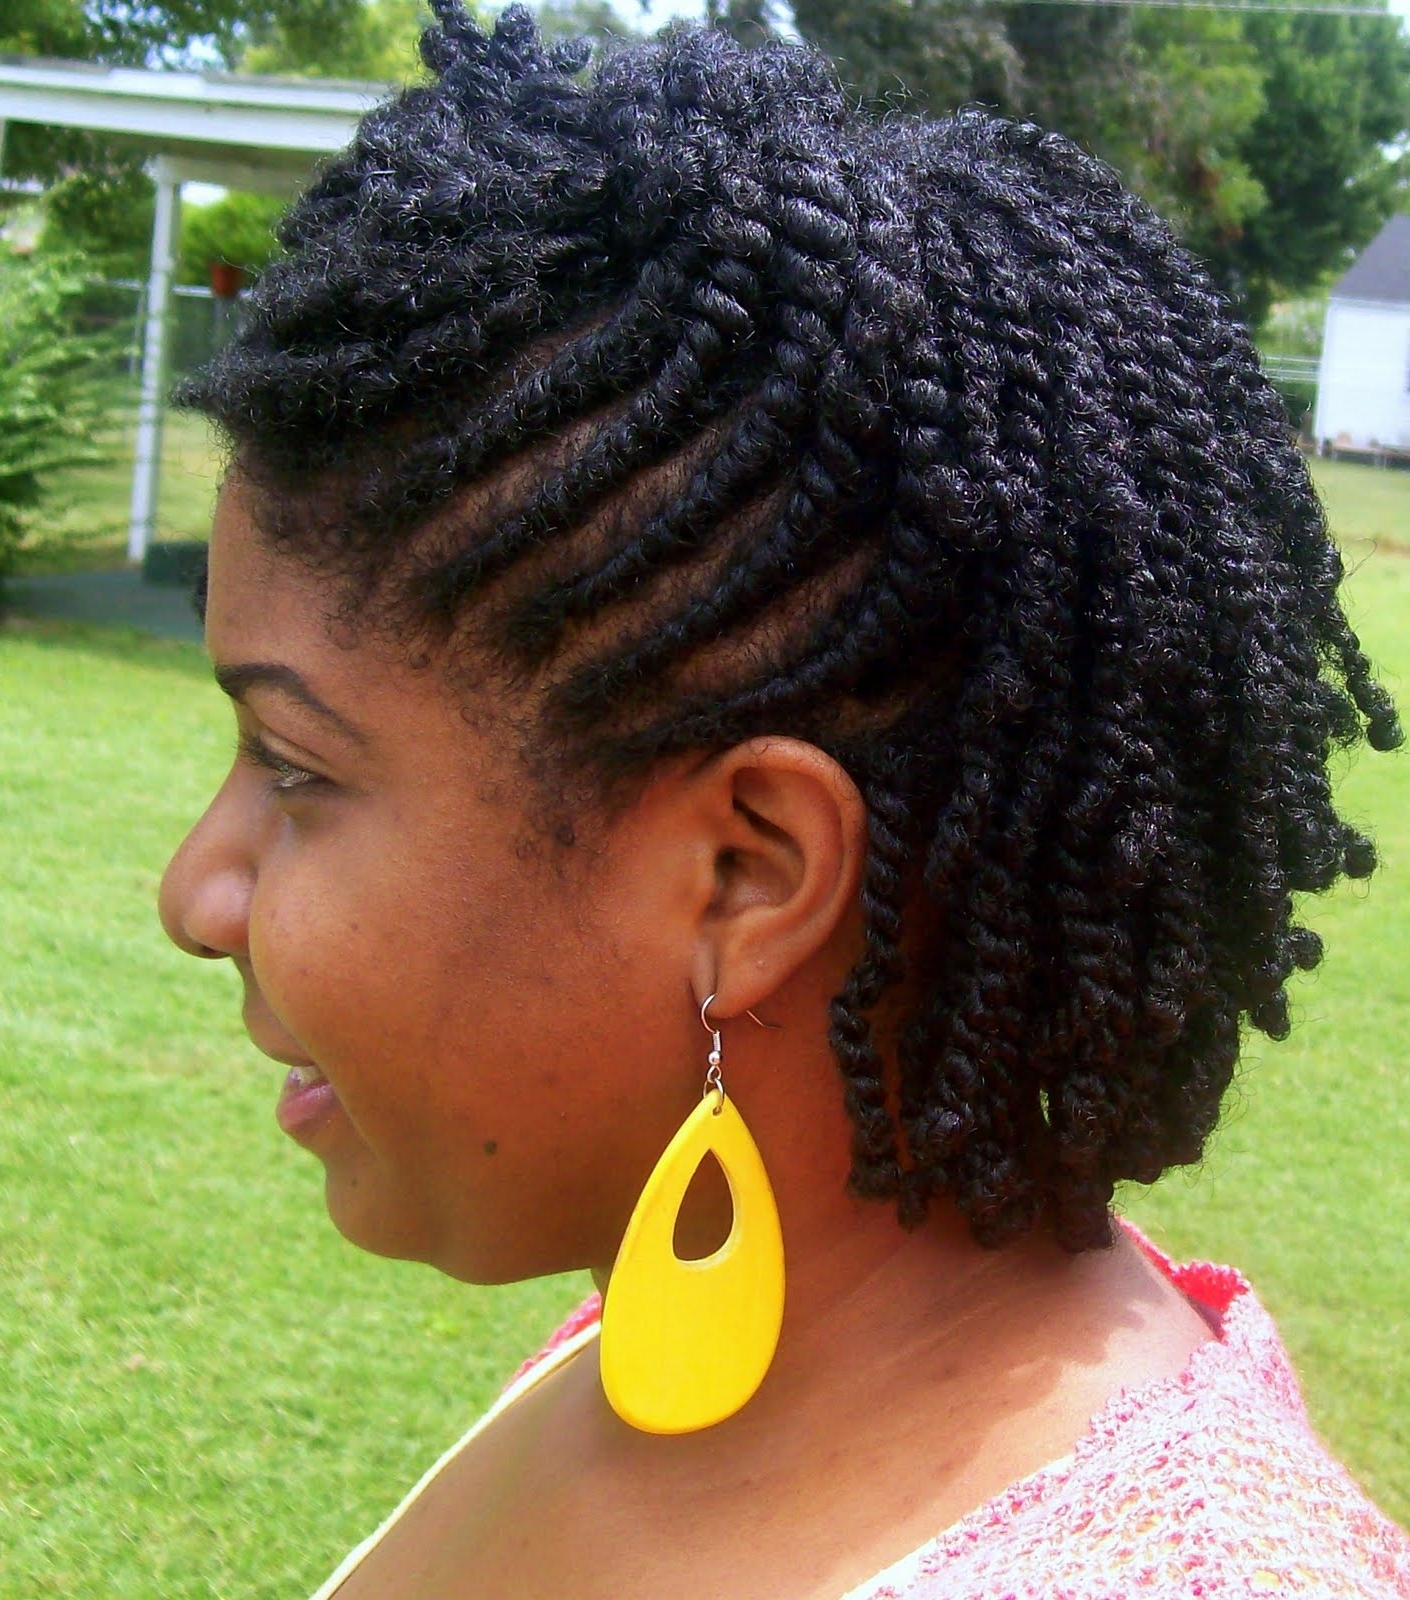 Superb Natural Hairstyles For African American 61 For Your Ideas With Regard To Updos For African American Natural Hair (View 11 of 15)